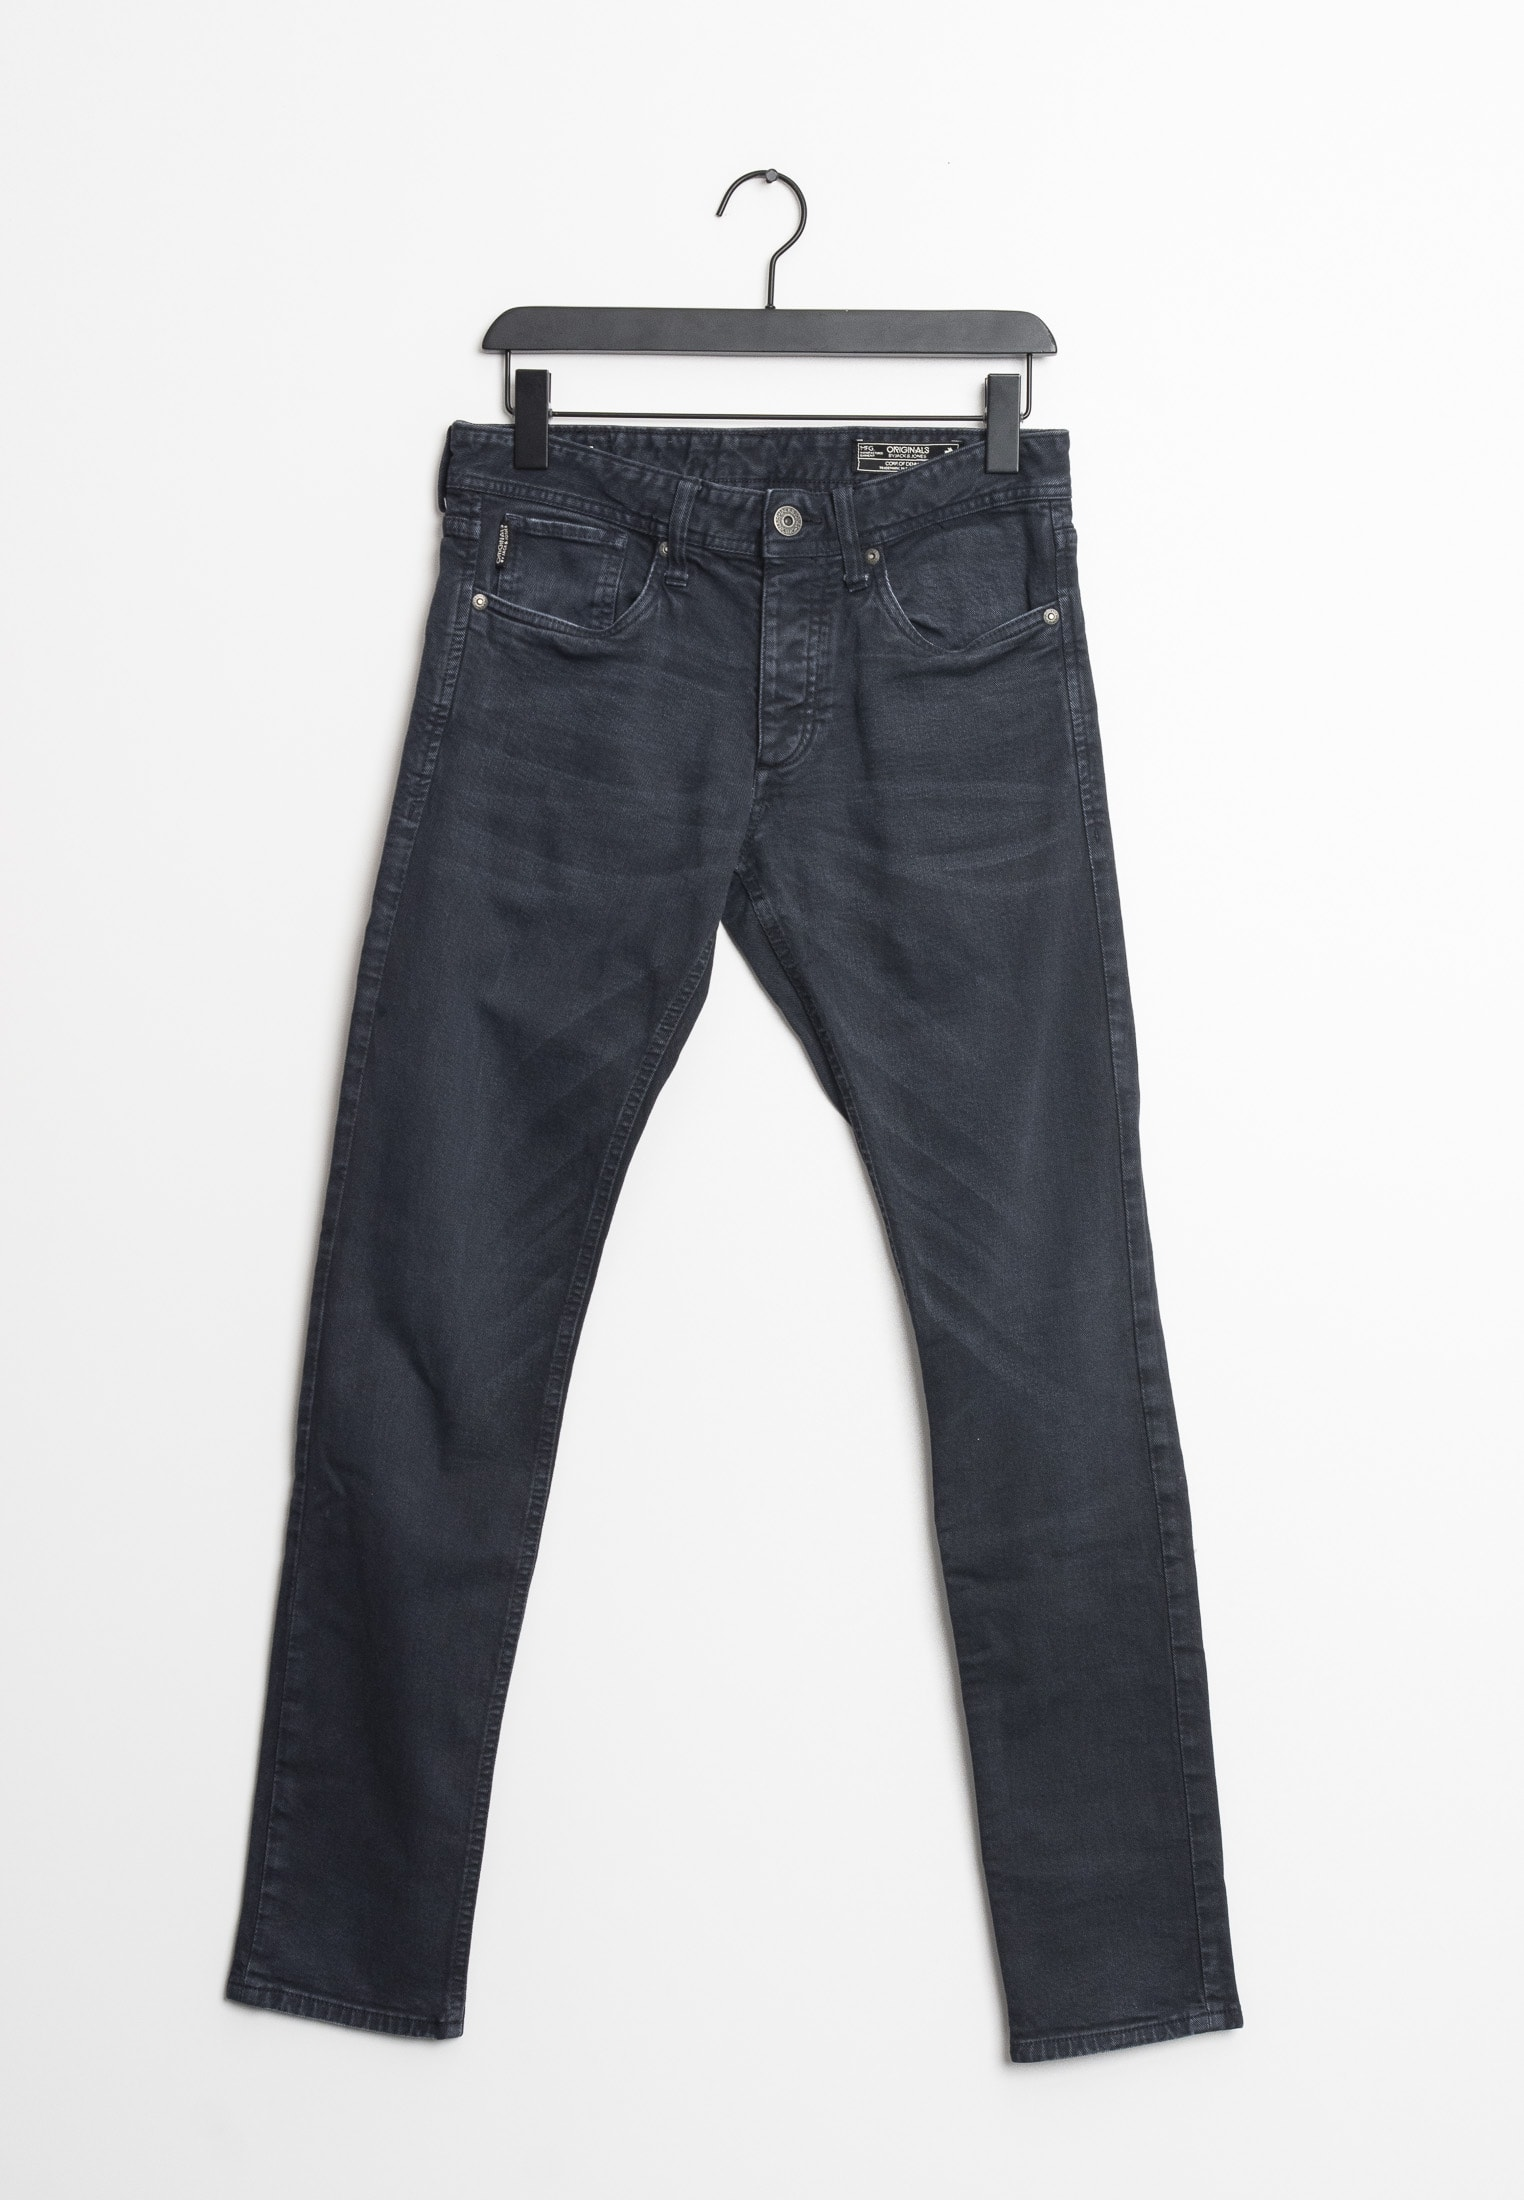 Royal Denim Division by Jack & Jones jeans, grå, W29 L32